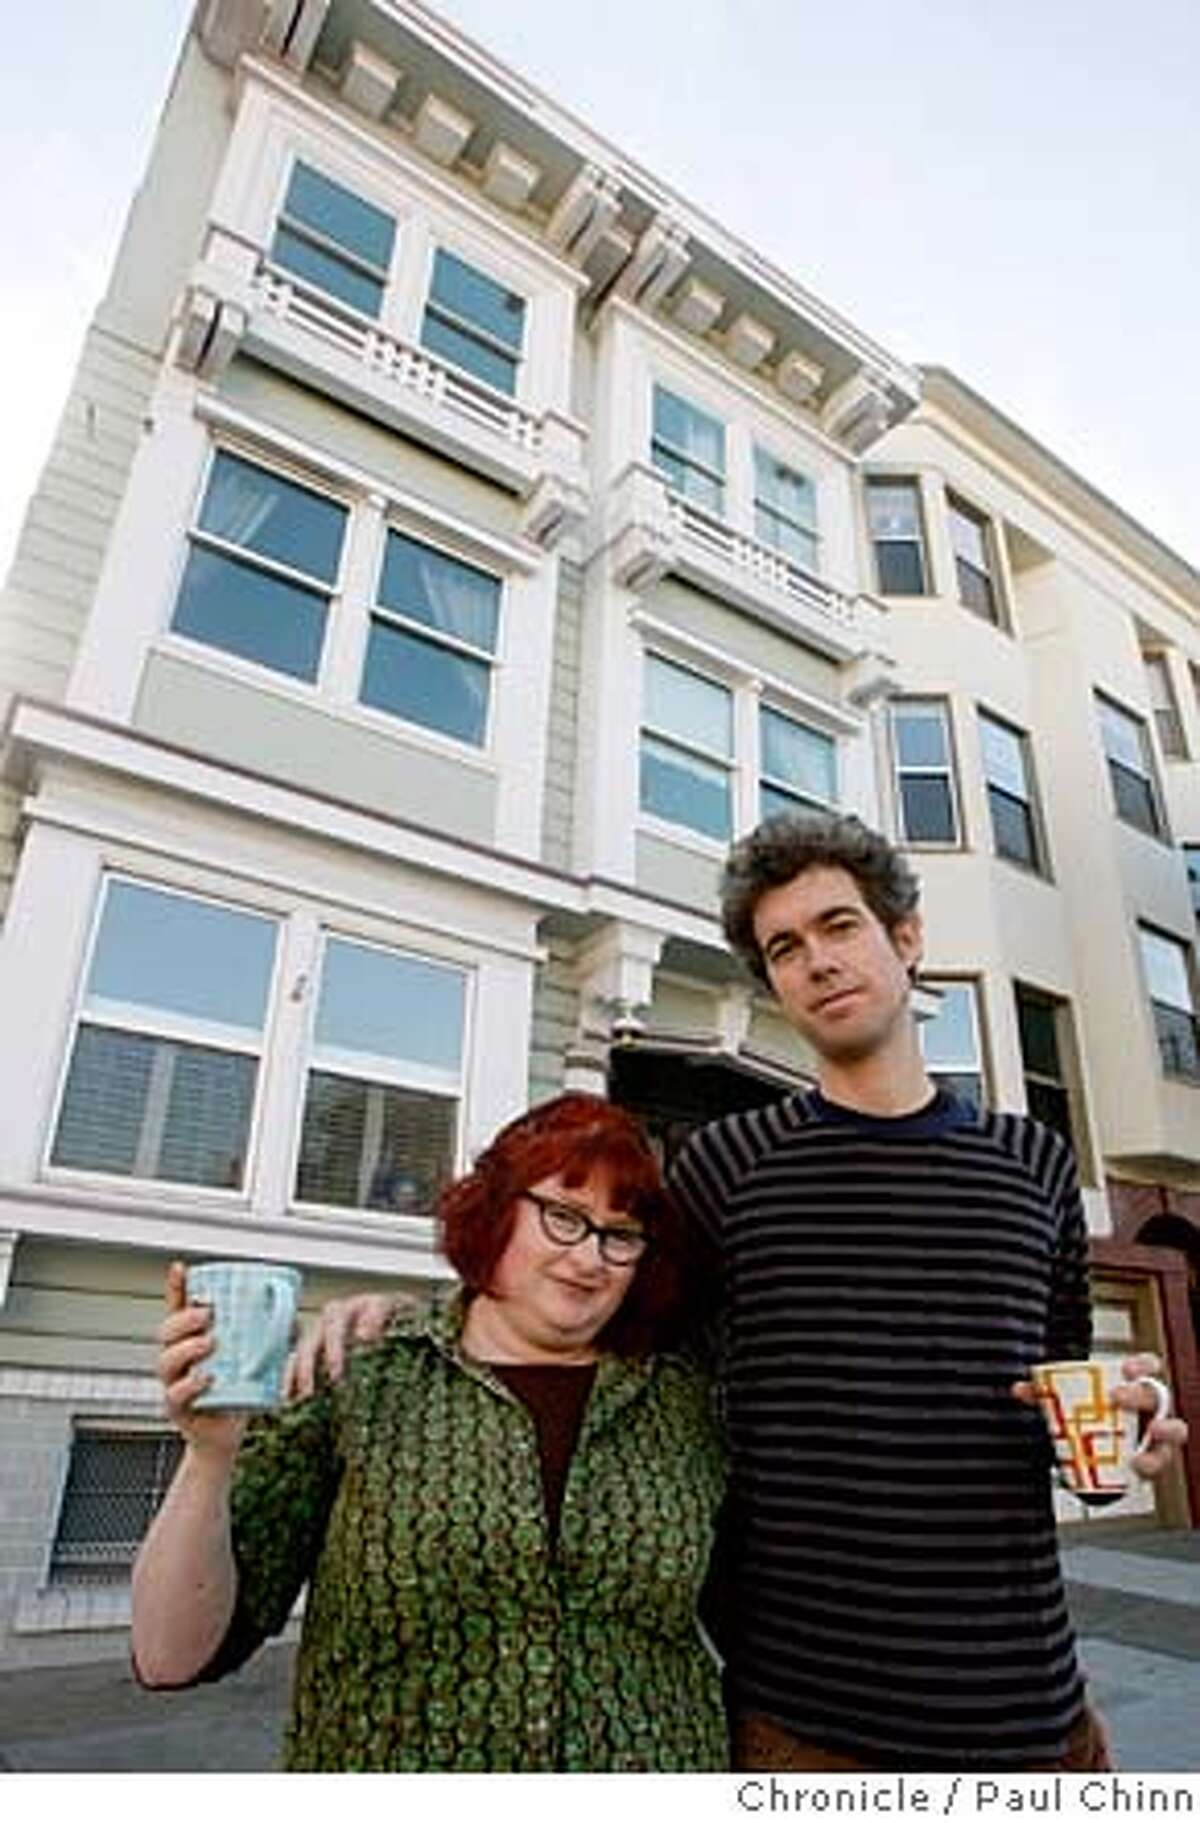 ###Live Caption:Karen Solomon and her husband Matthew Schaefer have coffee in front of their three-unit tenancy-in-common building in San Francisco, Calif., on Thursday, March 6, 2008. After years of trying, the couple's TIC arrangement is finally eligible for a condo conversion after winning in the city's competitive lottery system. Photo by Paul Chinn / San Francisco Chronicle###Caption History:Karen Solomon and her husband Matthew Schaefer have coffee in front of their three-unit tenancy-in-common building in San Francisco, Calif., on Thursday, March 6, 2008. After years of trying, the couple's TIC arrangement is finally eligible for a condo conversion after winning in the city's competitive lottery system. Photo by Paul Chinn / San Francisco Chronicle###Notes:Karen Solomon, Matthew Schaefer###Special Instructions:MANDATORY CREDIT FOR PHOTOGRAPHER AND S.F. CHRONICLE/NO SALES - MAGS OUT